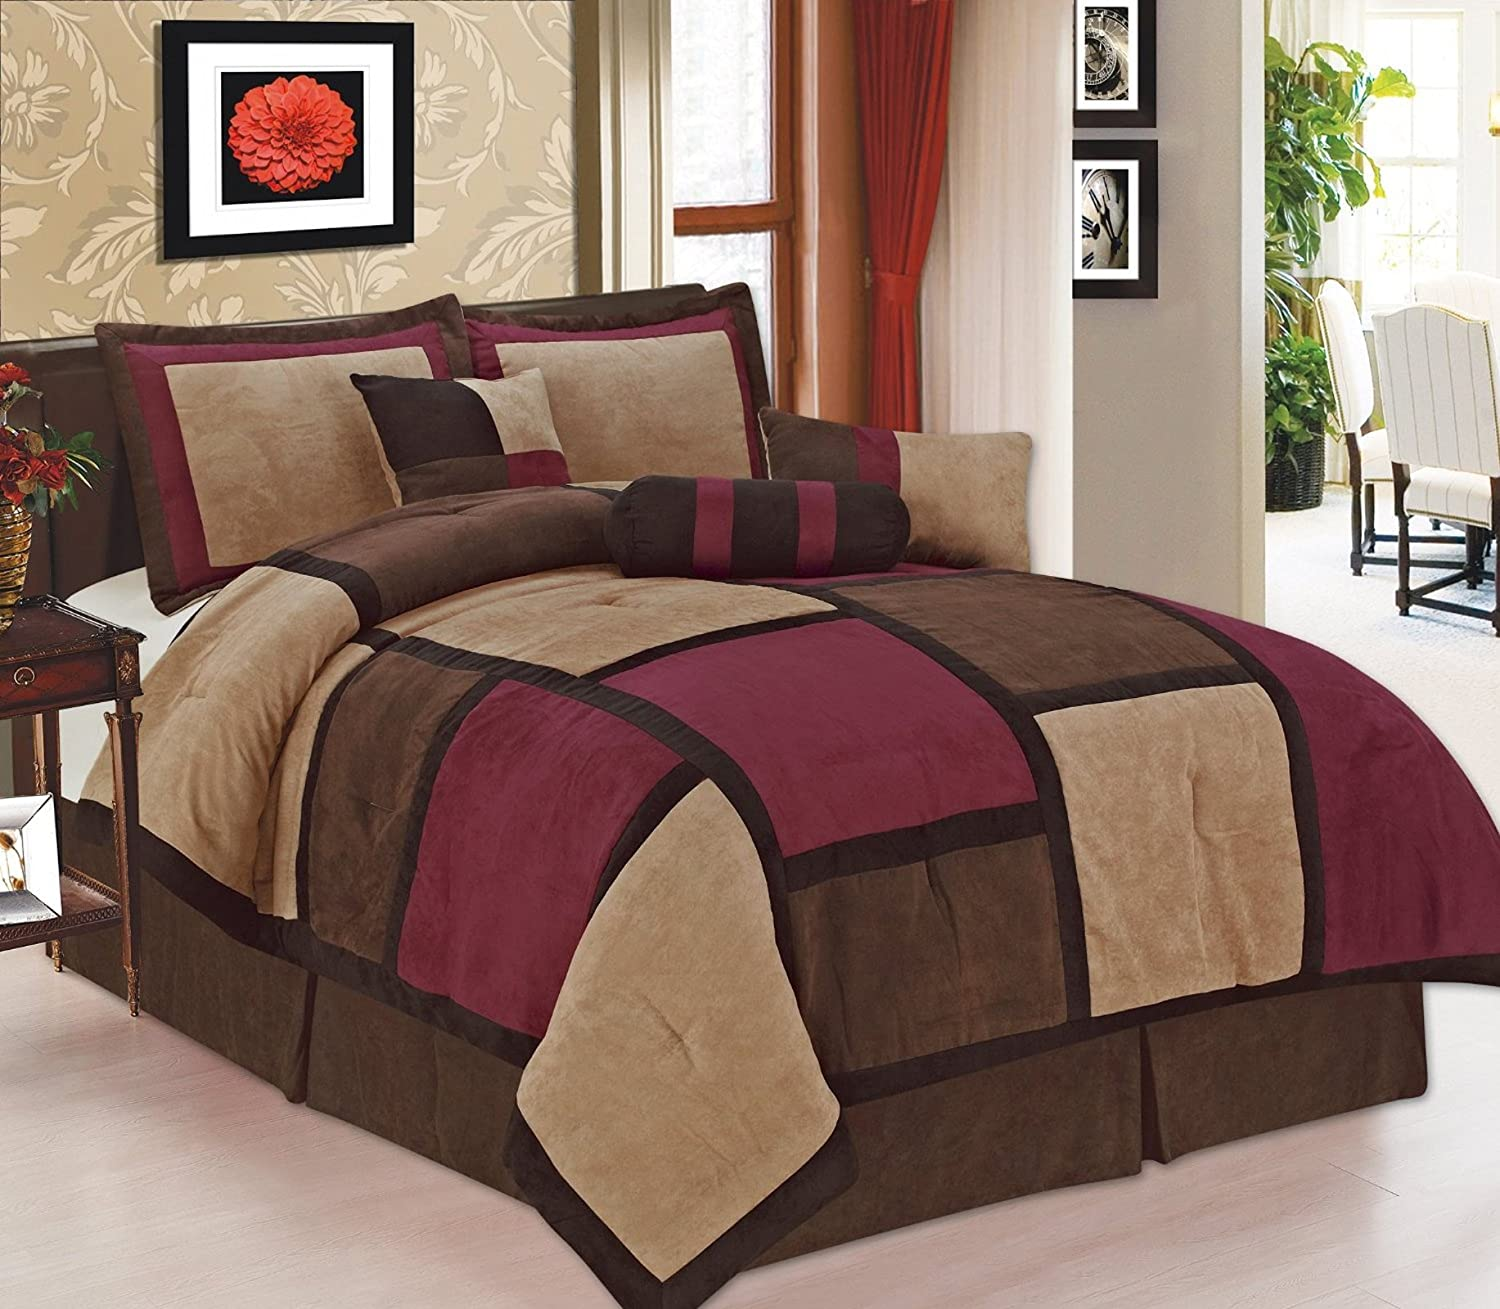 Amazon Legacy Decor 7 Piece Brown Burgundy & Beige Micro Suede